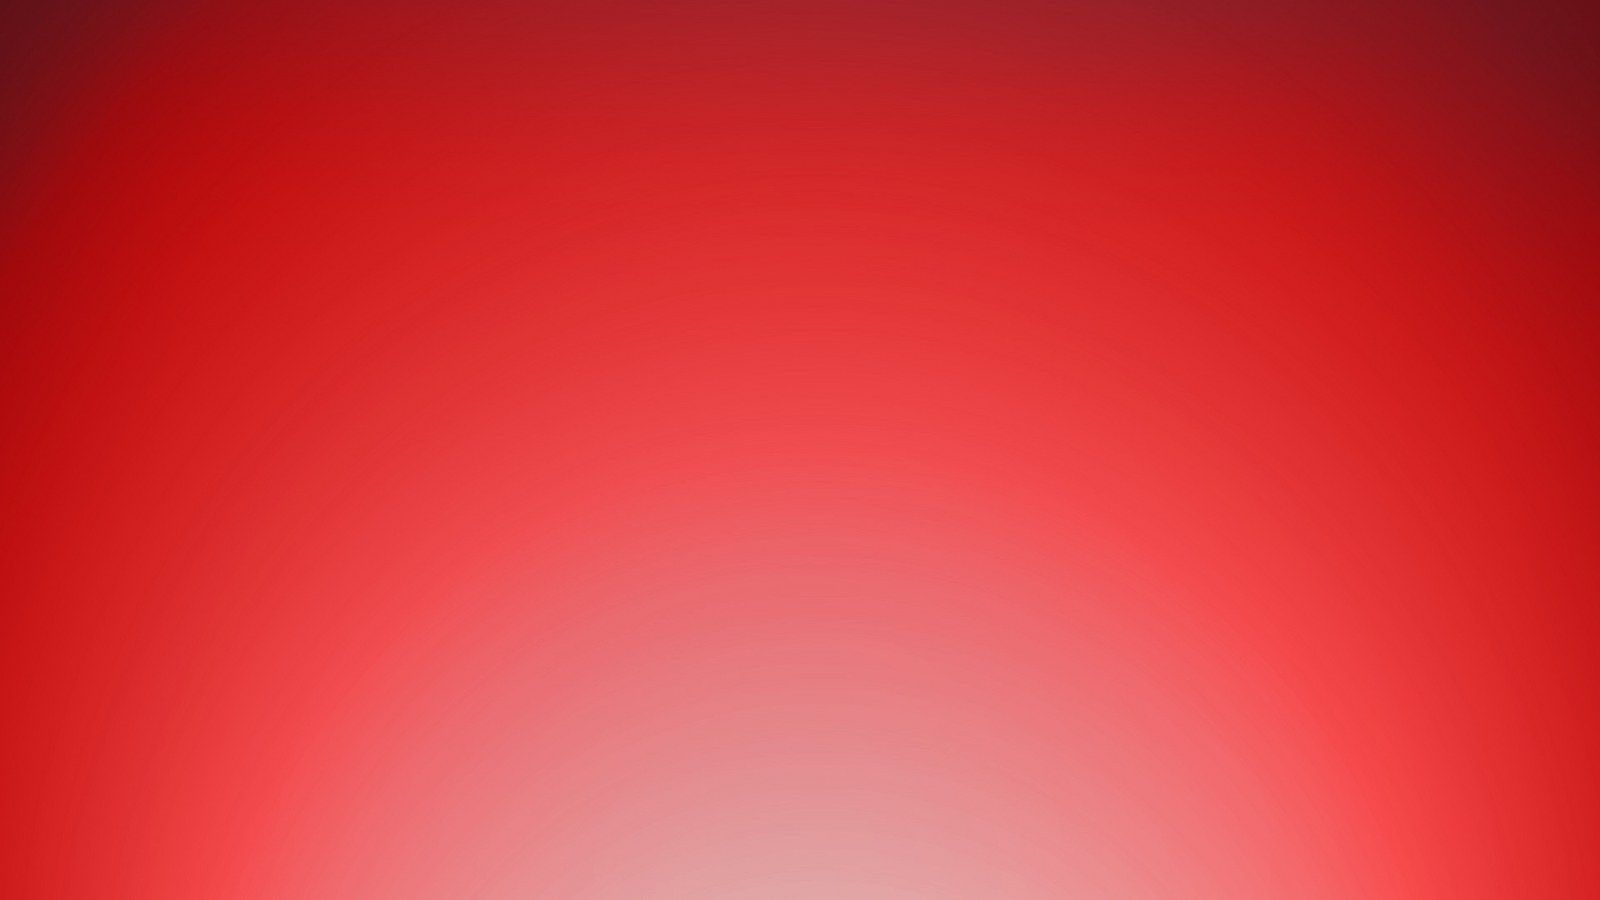 Cool Red Background Page 1